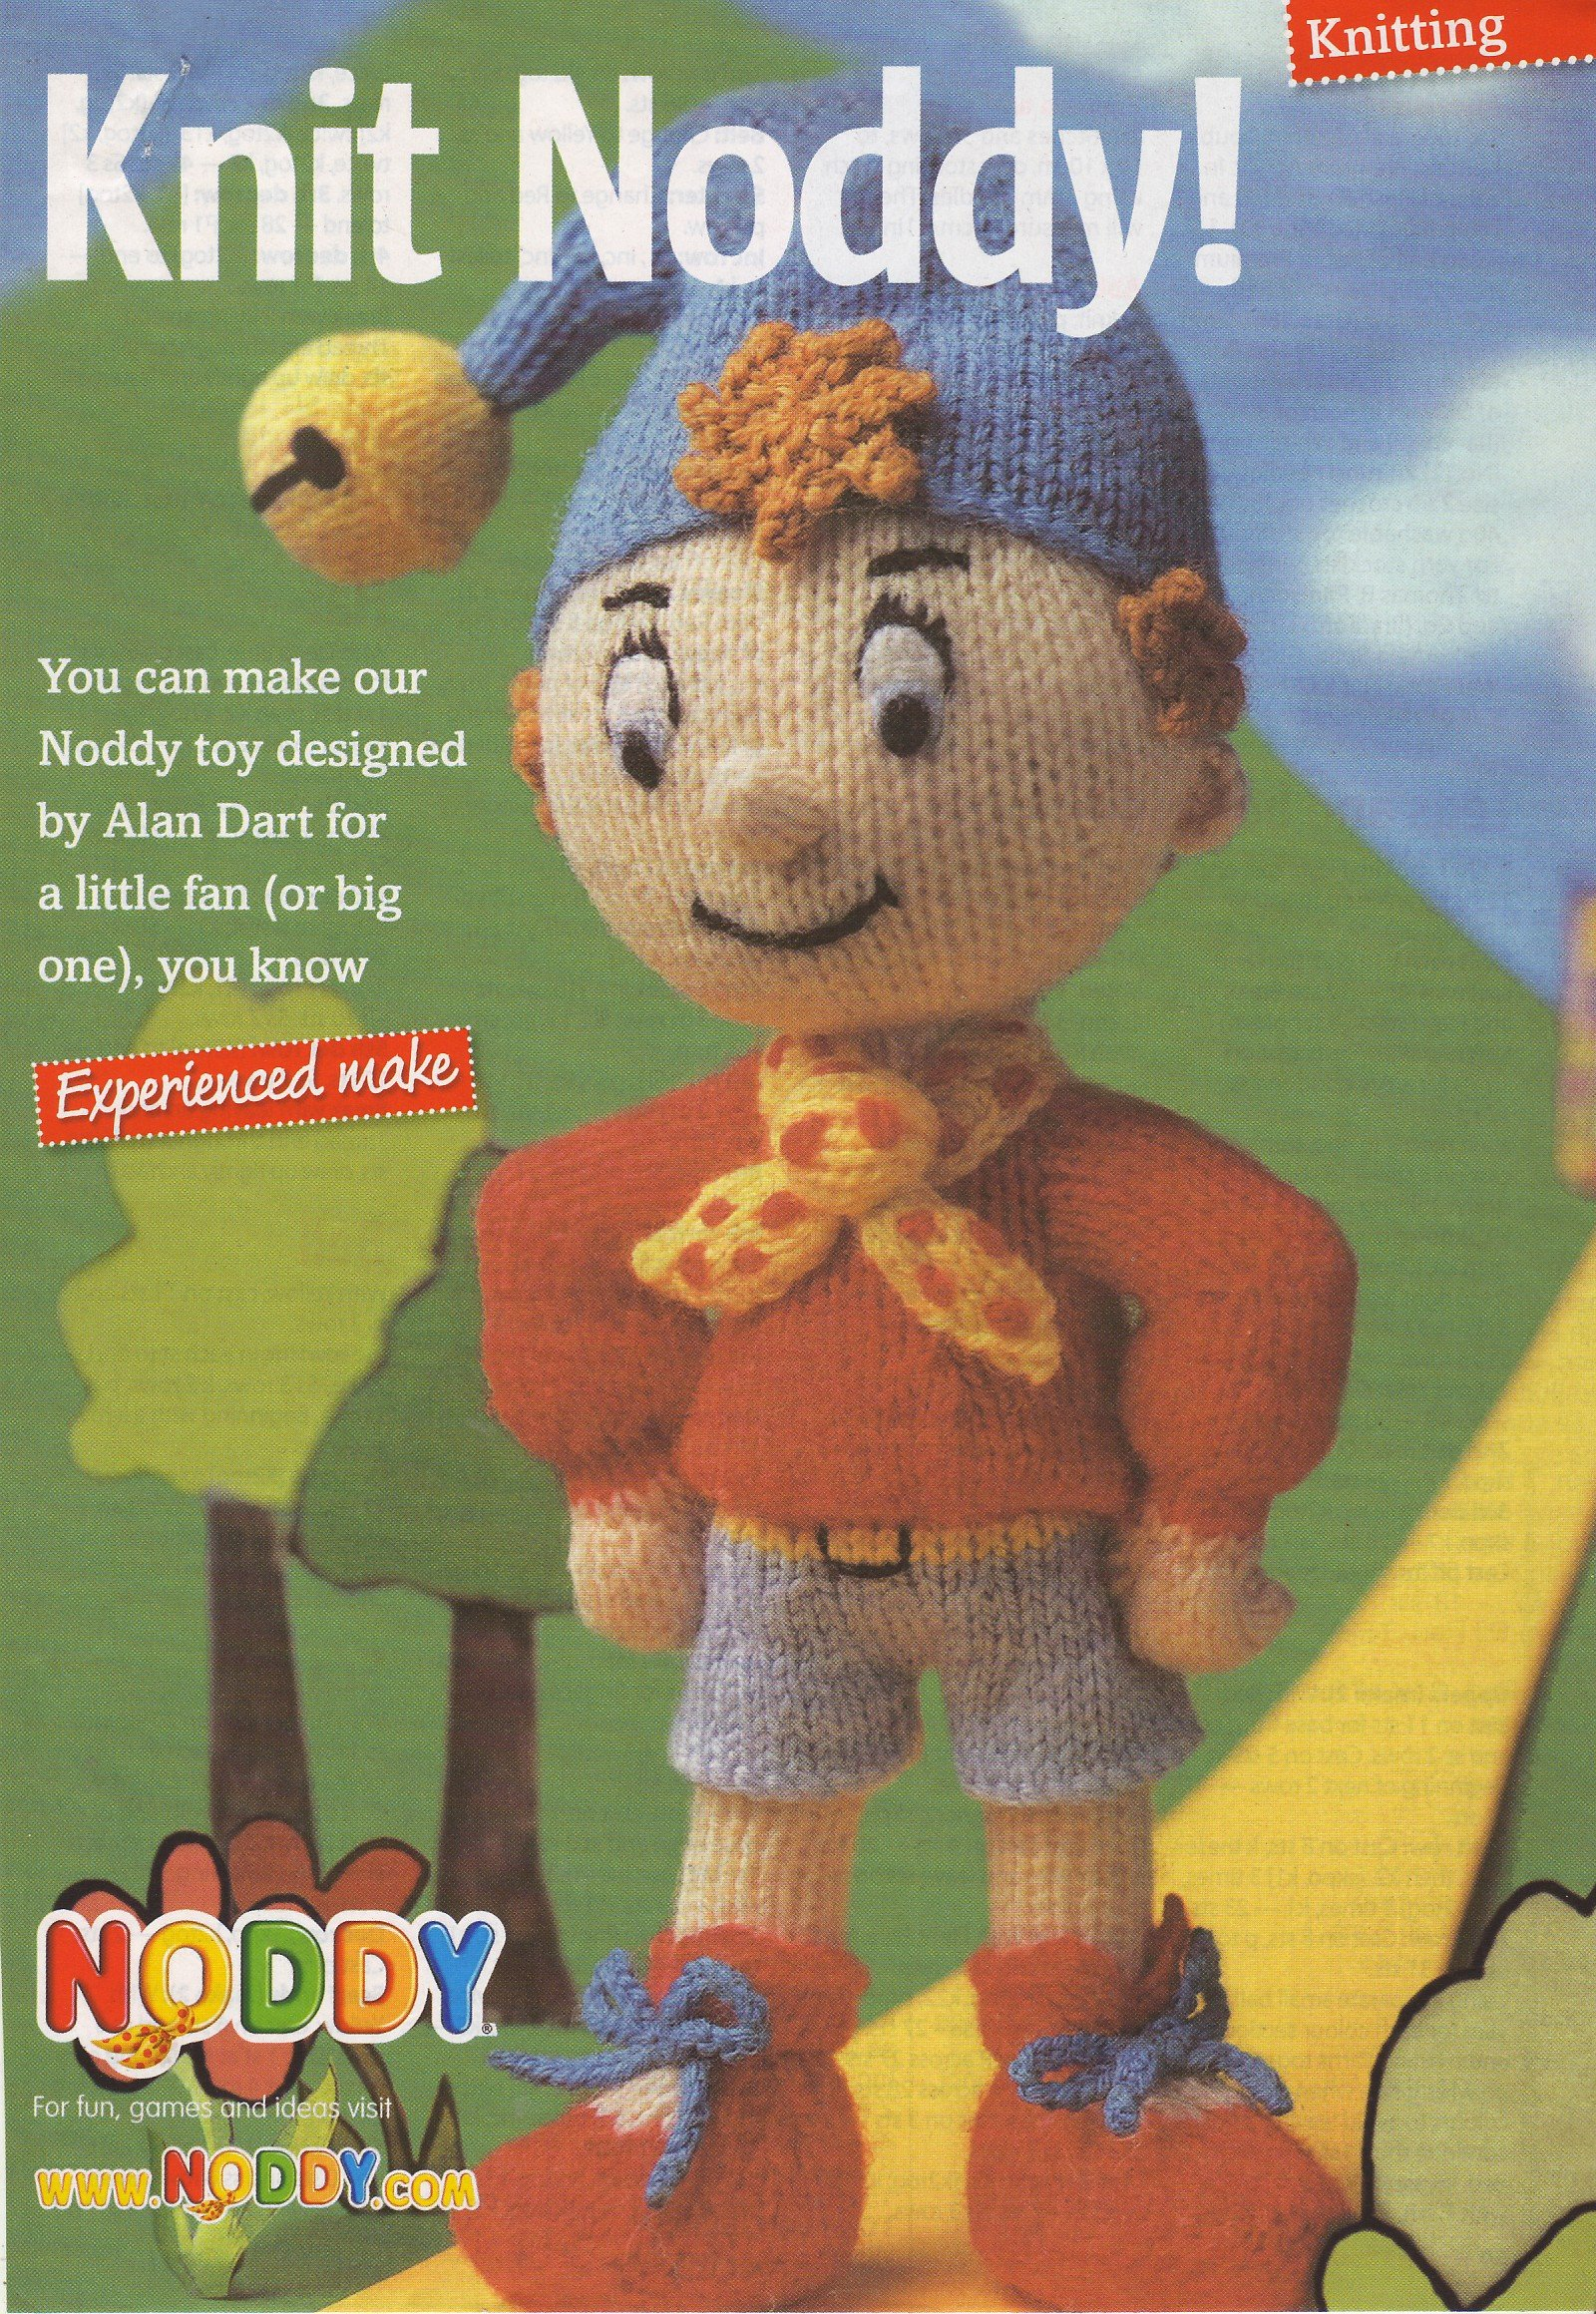 Noddy designed by Alan Dart Toy Knitting and Crochet Pattern ...